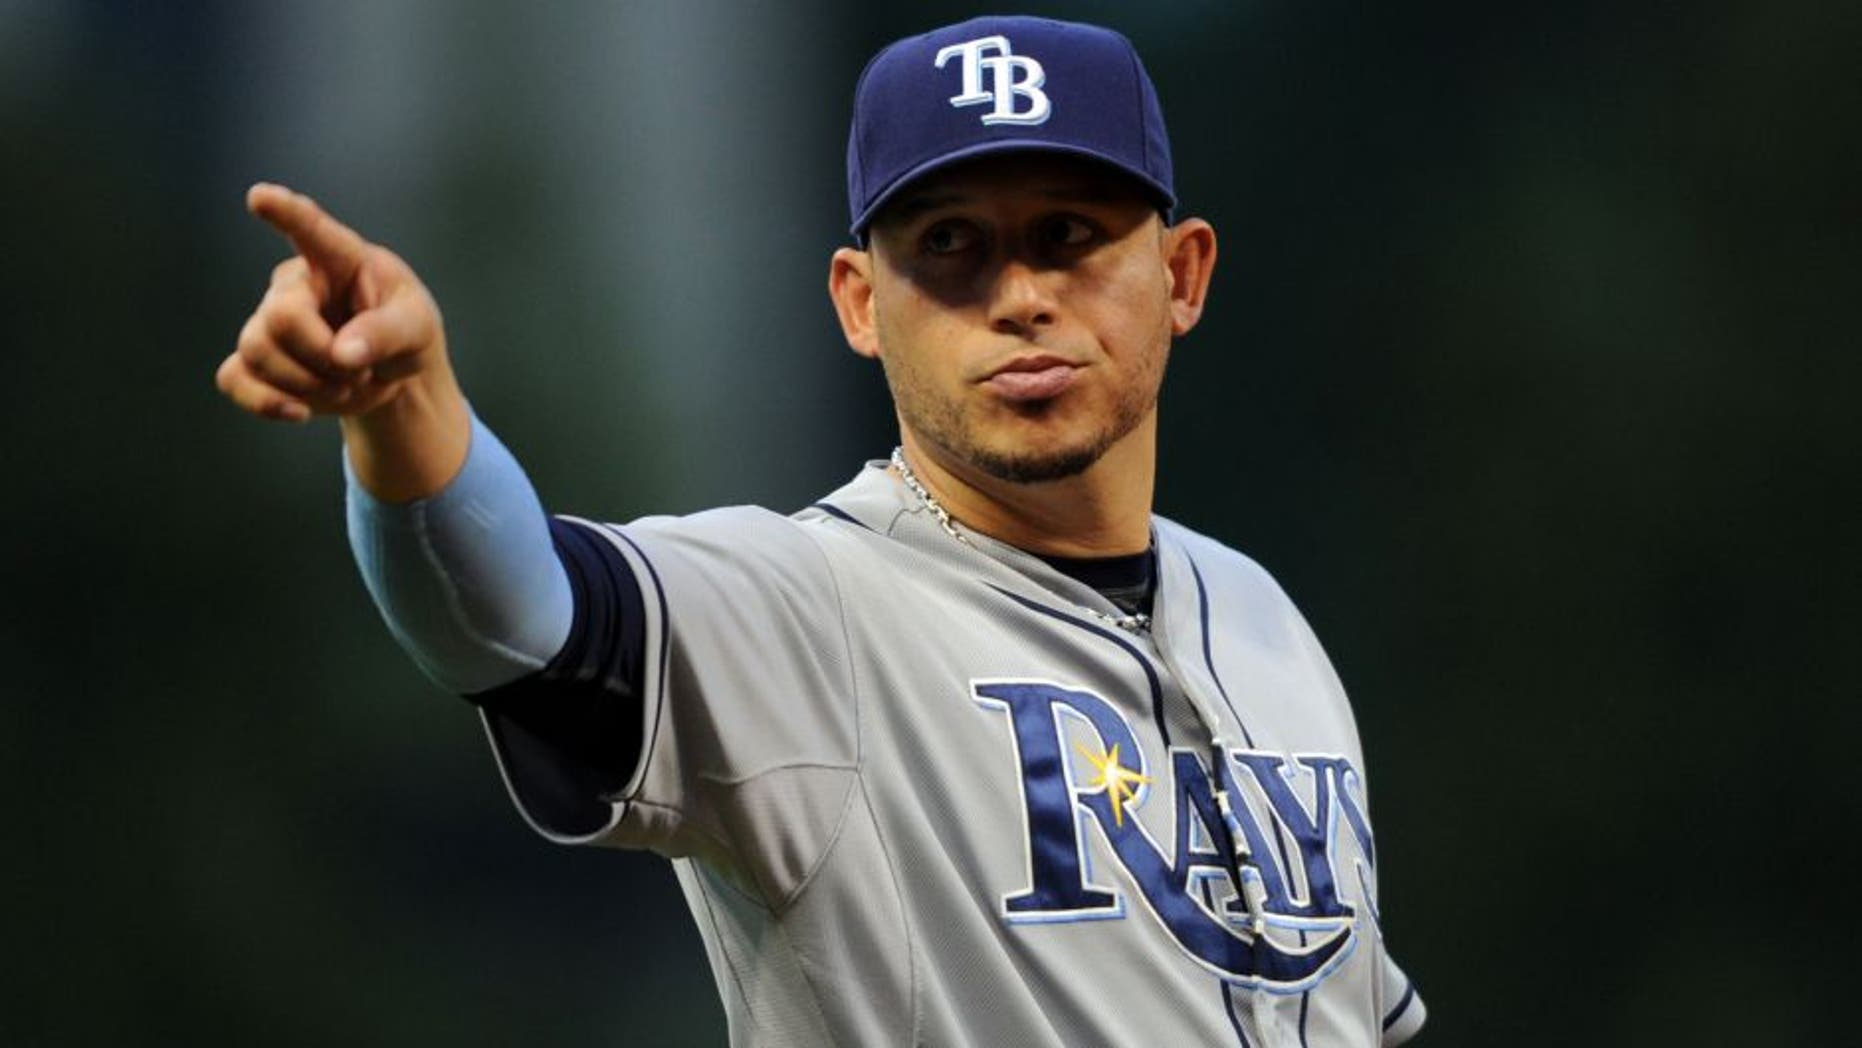 Jun 19, 2015; Cleveland, OH, USA; Tampa Bay Rays shortstop Asdrubal Cabrera (13) points to fans during the sixth inning against the Cleveland Indians at Progressive Field. Mandatory Credit: Ken Blaze-USA TODAY Sports